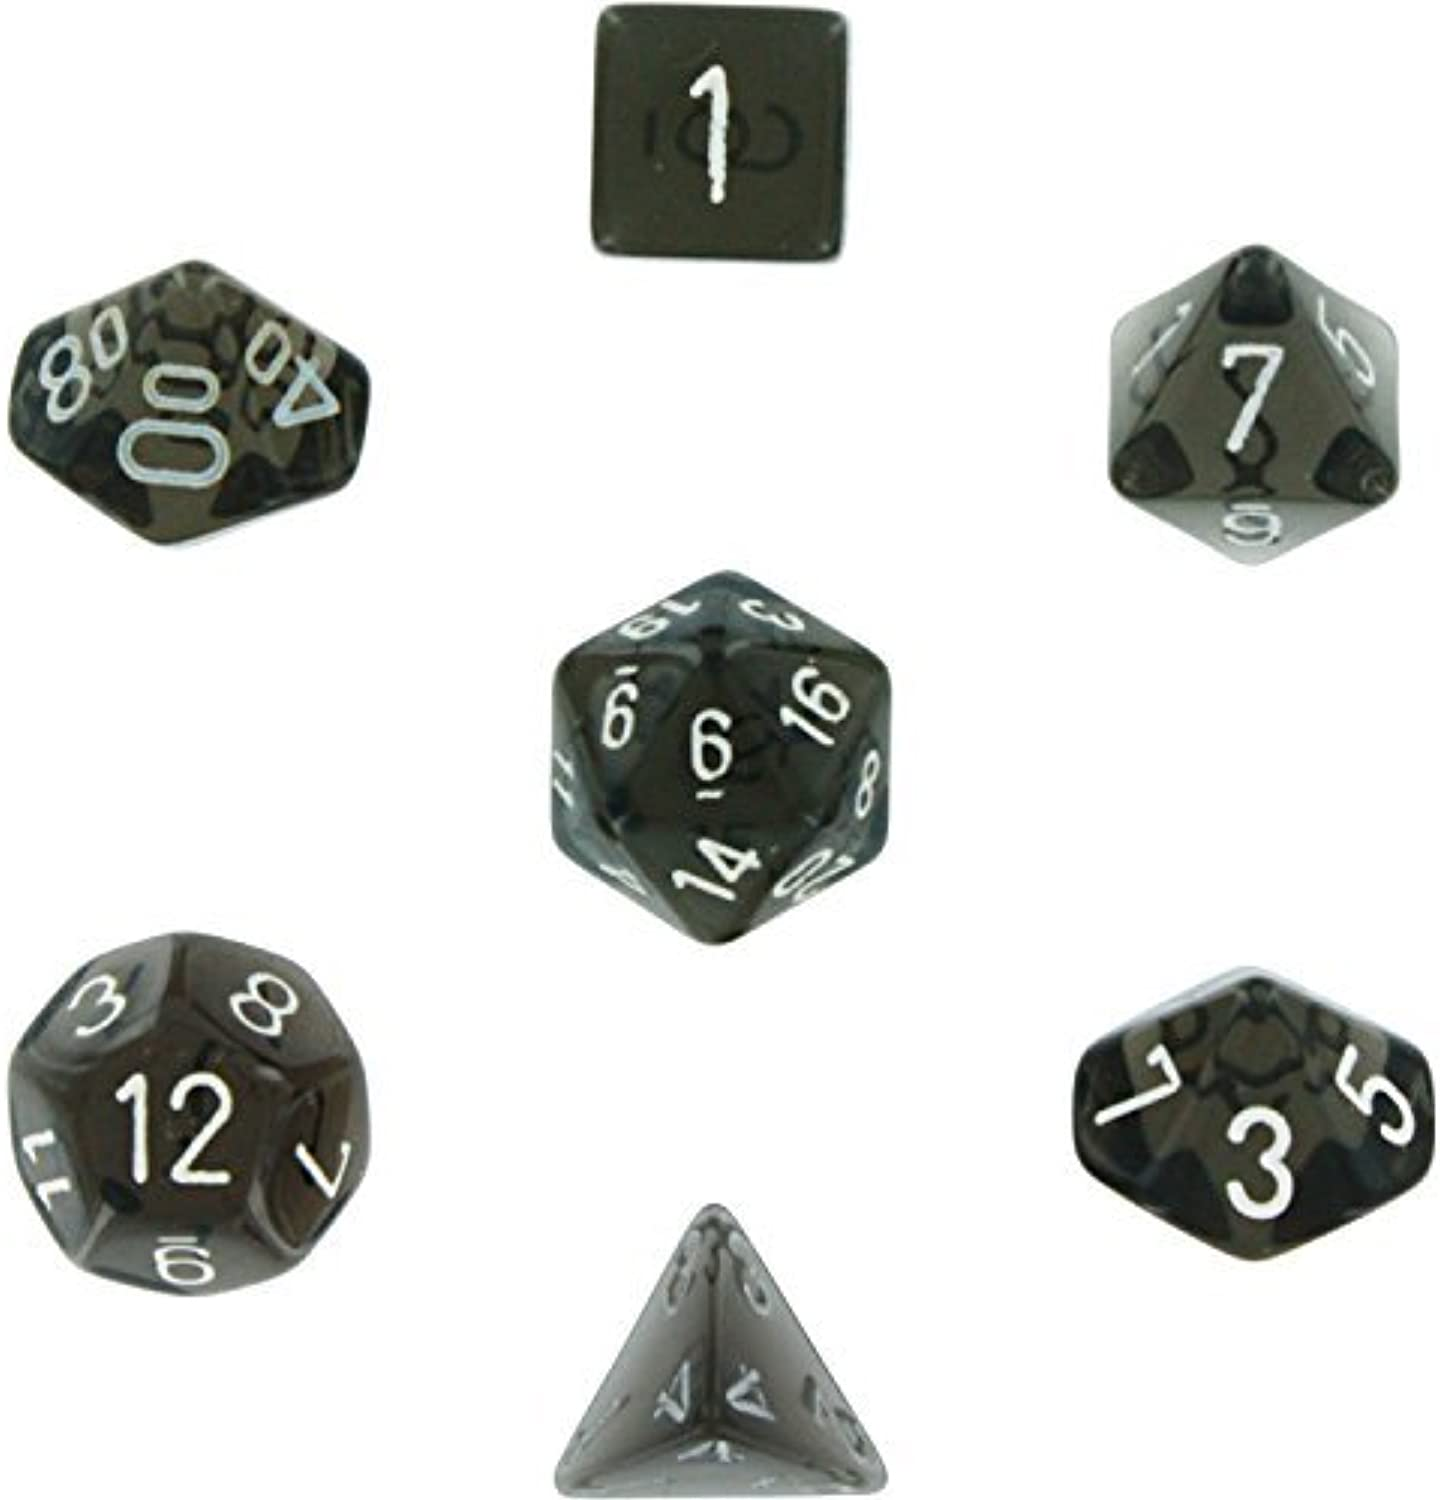 Polyhedral 7Die Translucent Chessex Dice Set  Smoke with White by Chessex